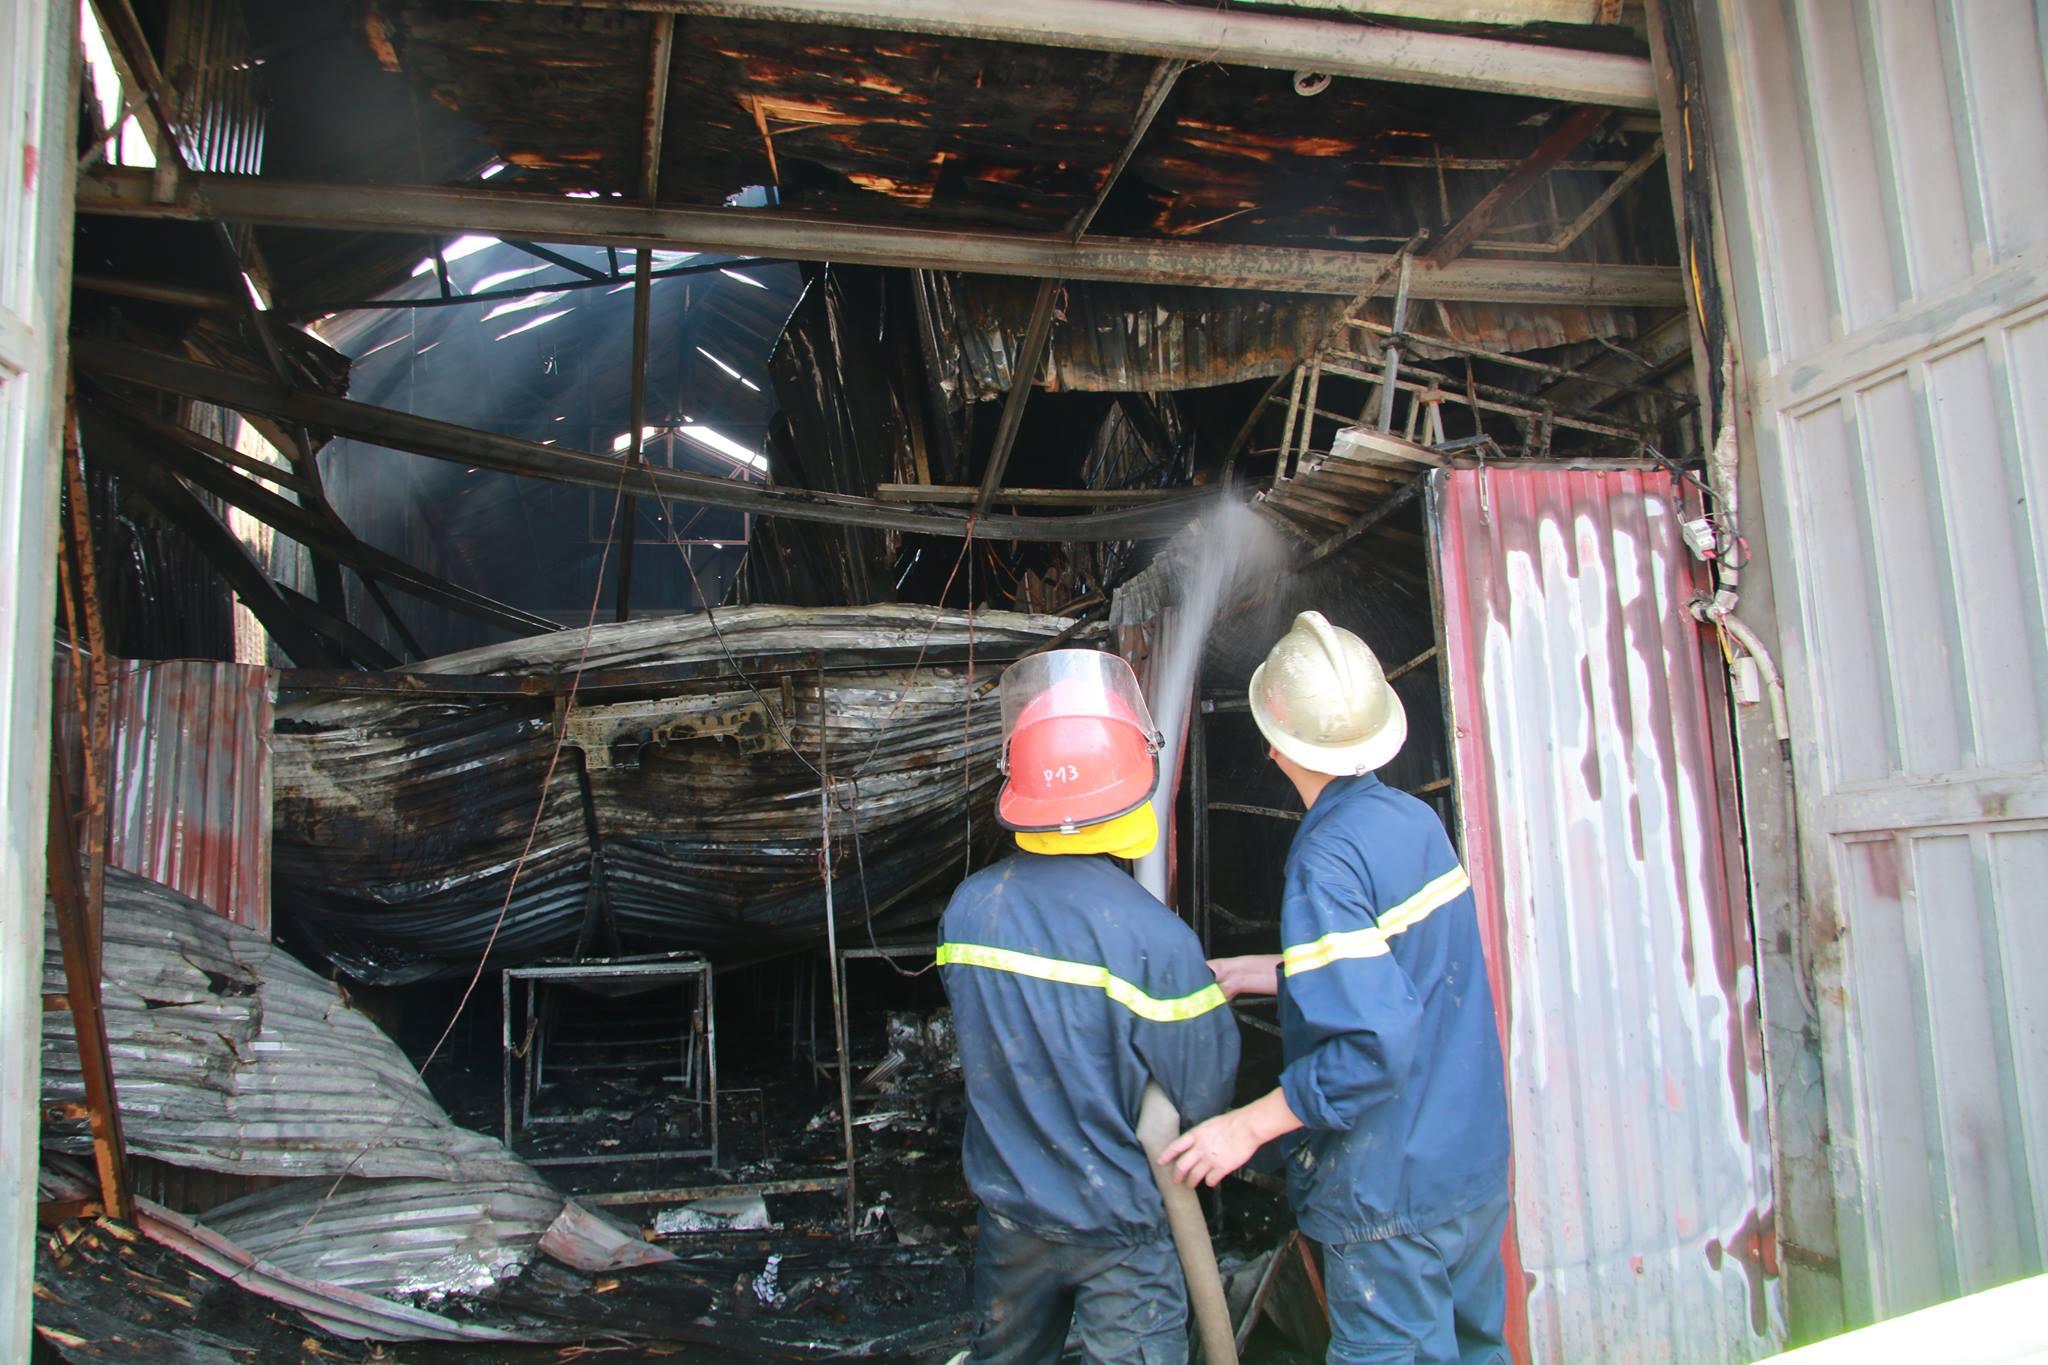 Eight killed as fire devours baking facility in Hanoi